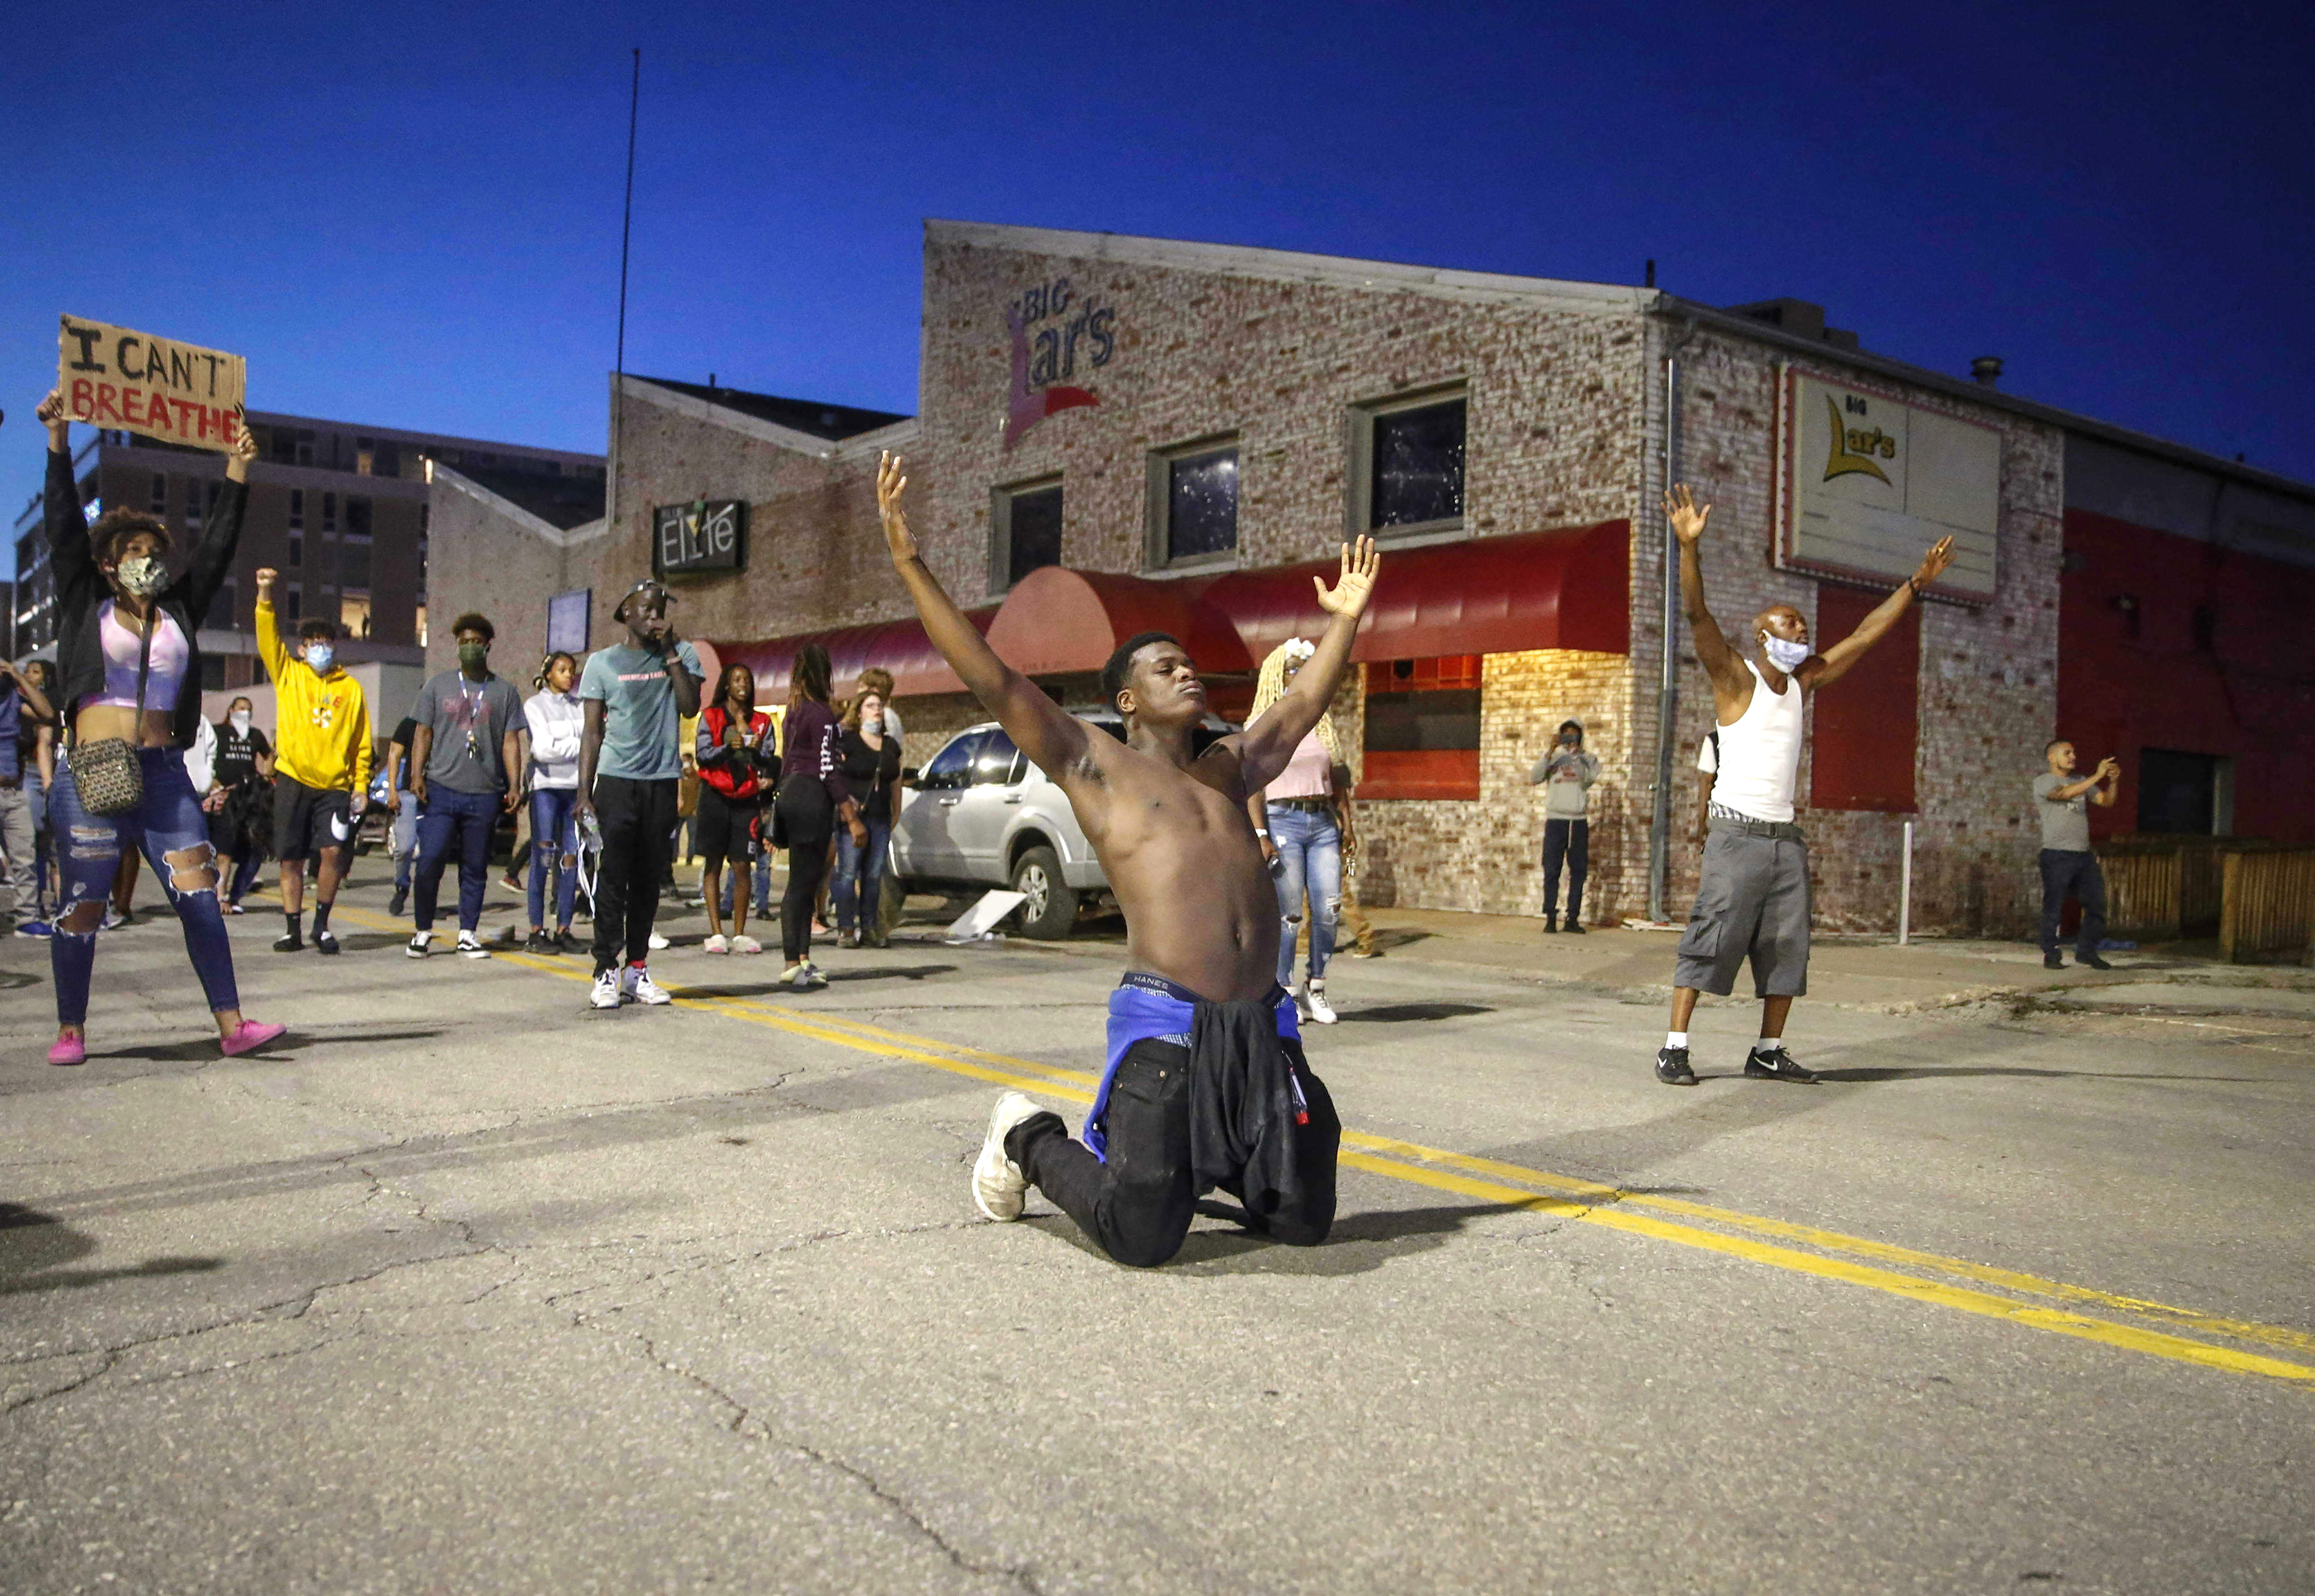 In this May 29 photo, Marcus Lavon of Des Moines, Iowa. raises his hands during a protest in Des Moines. Protests have been erupting all over the country after George Floyd died earlier this week in police custody in Minneapolis.